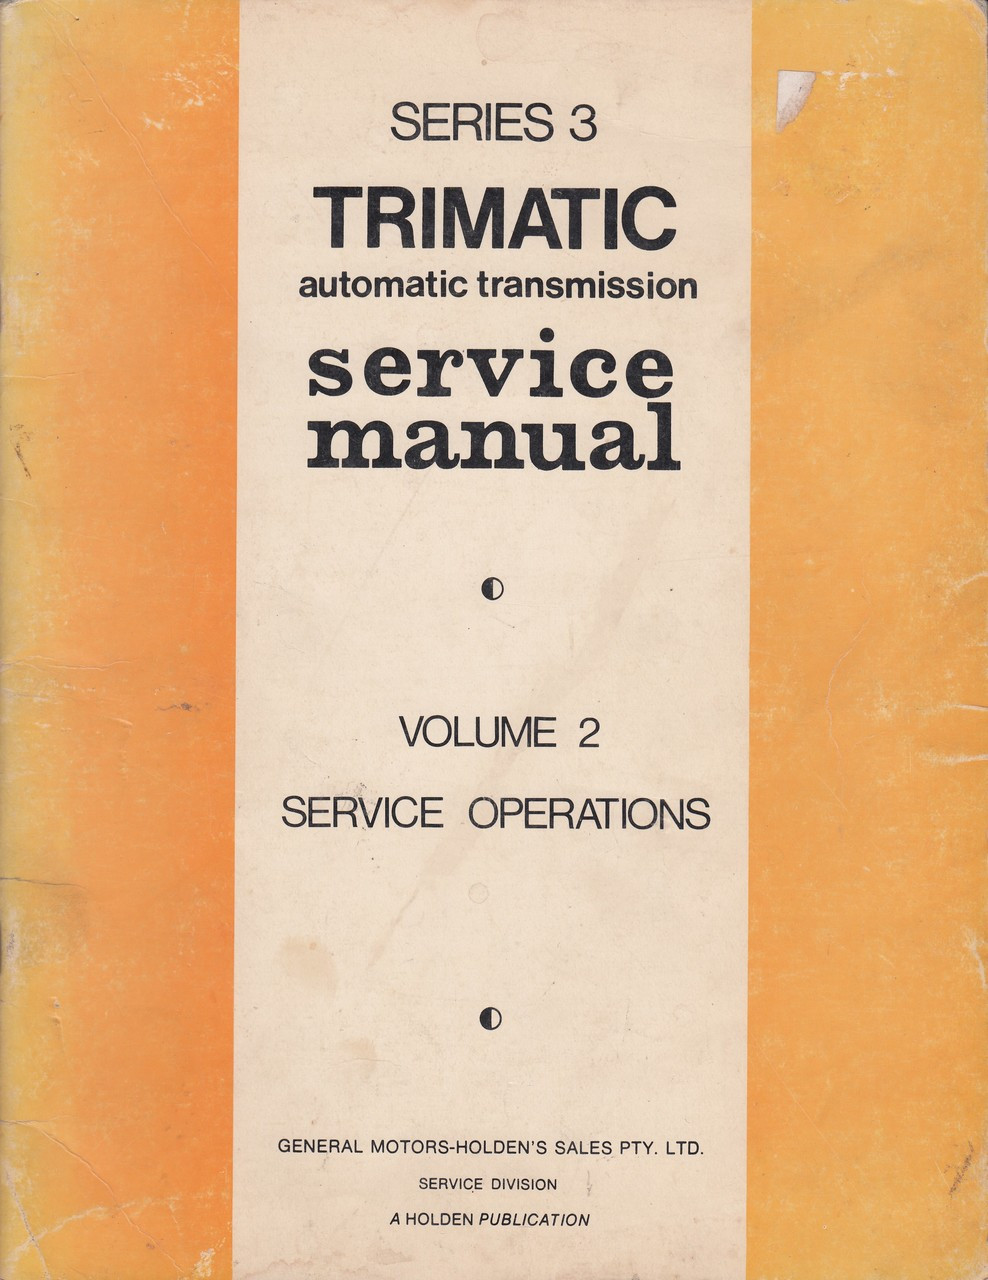 hight resolution of holden series 3 trimatic automatic transmission service manual vol 2 service operations